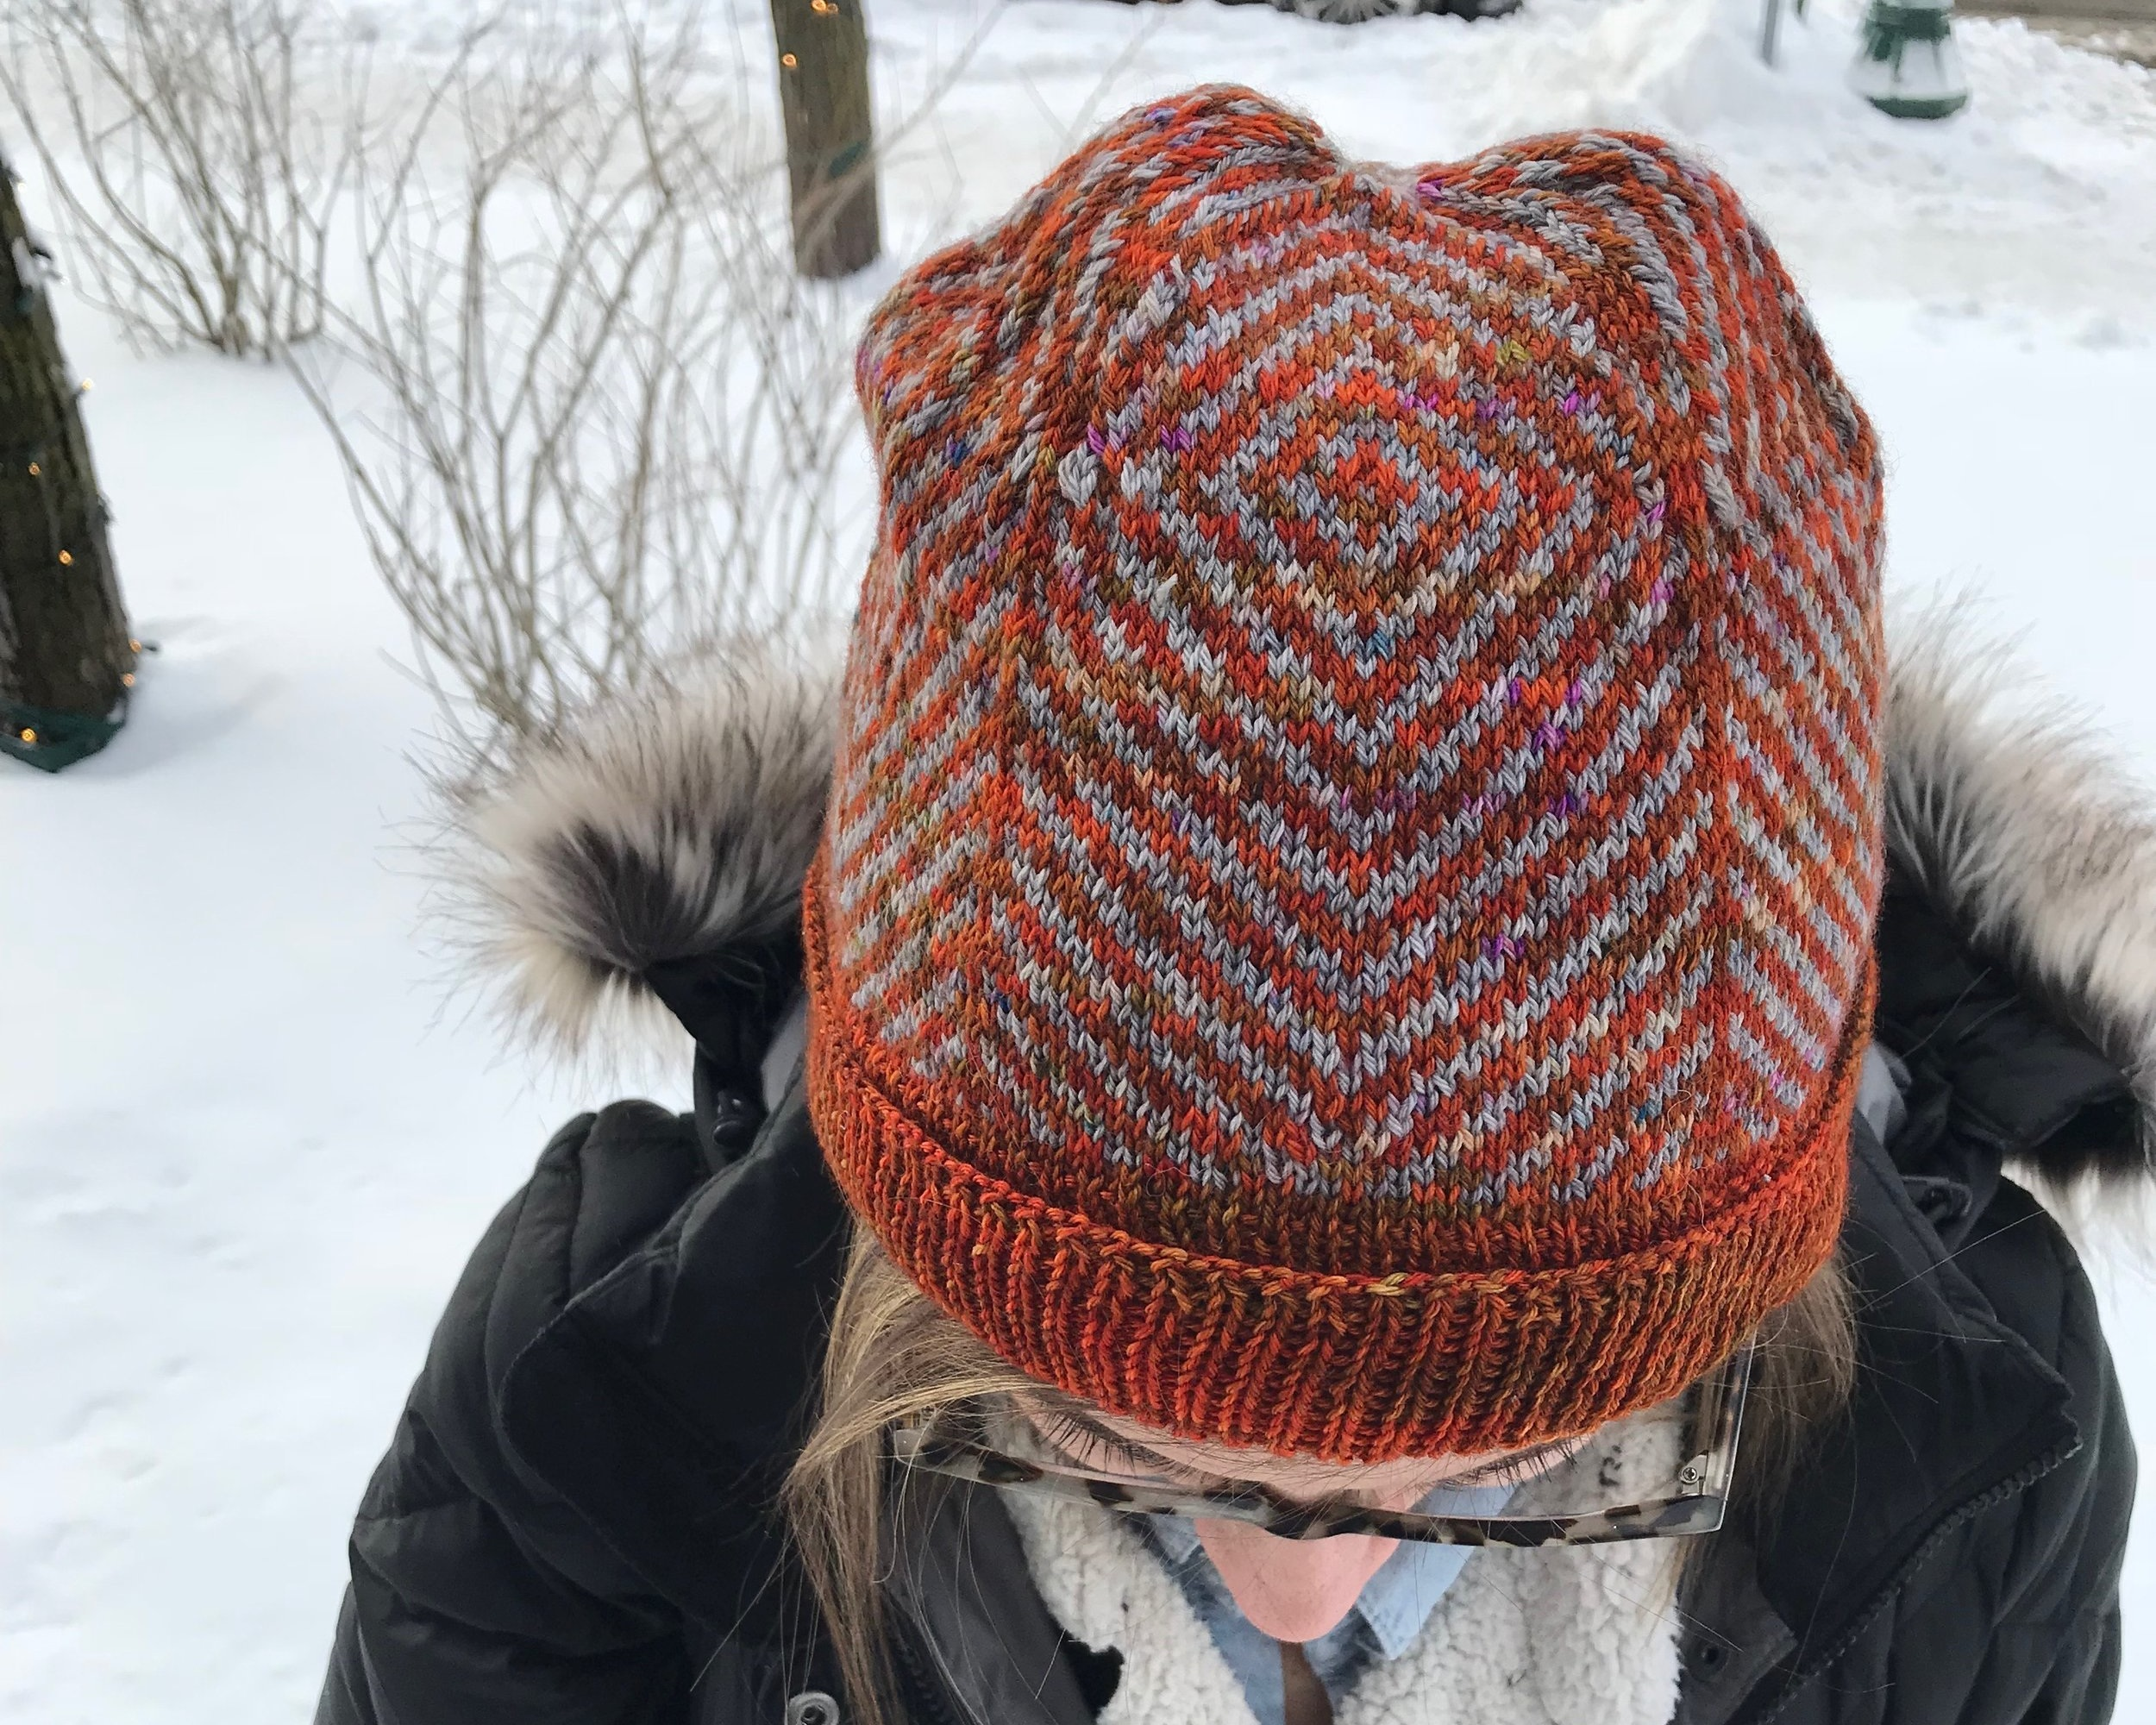 Micah Hat - The Micah Hat was first designed with lace weight cashmere yarn my husband got me as the best christmas present. The diamond shaped panels form a star when viewing from the crown.Ellen Coy - Ellen Rose Knits#micahhat #ellenroseknits